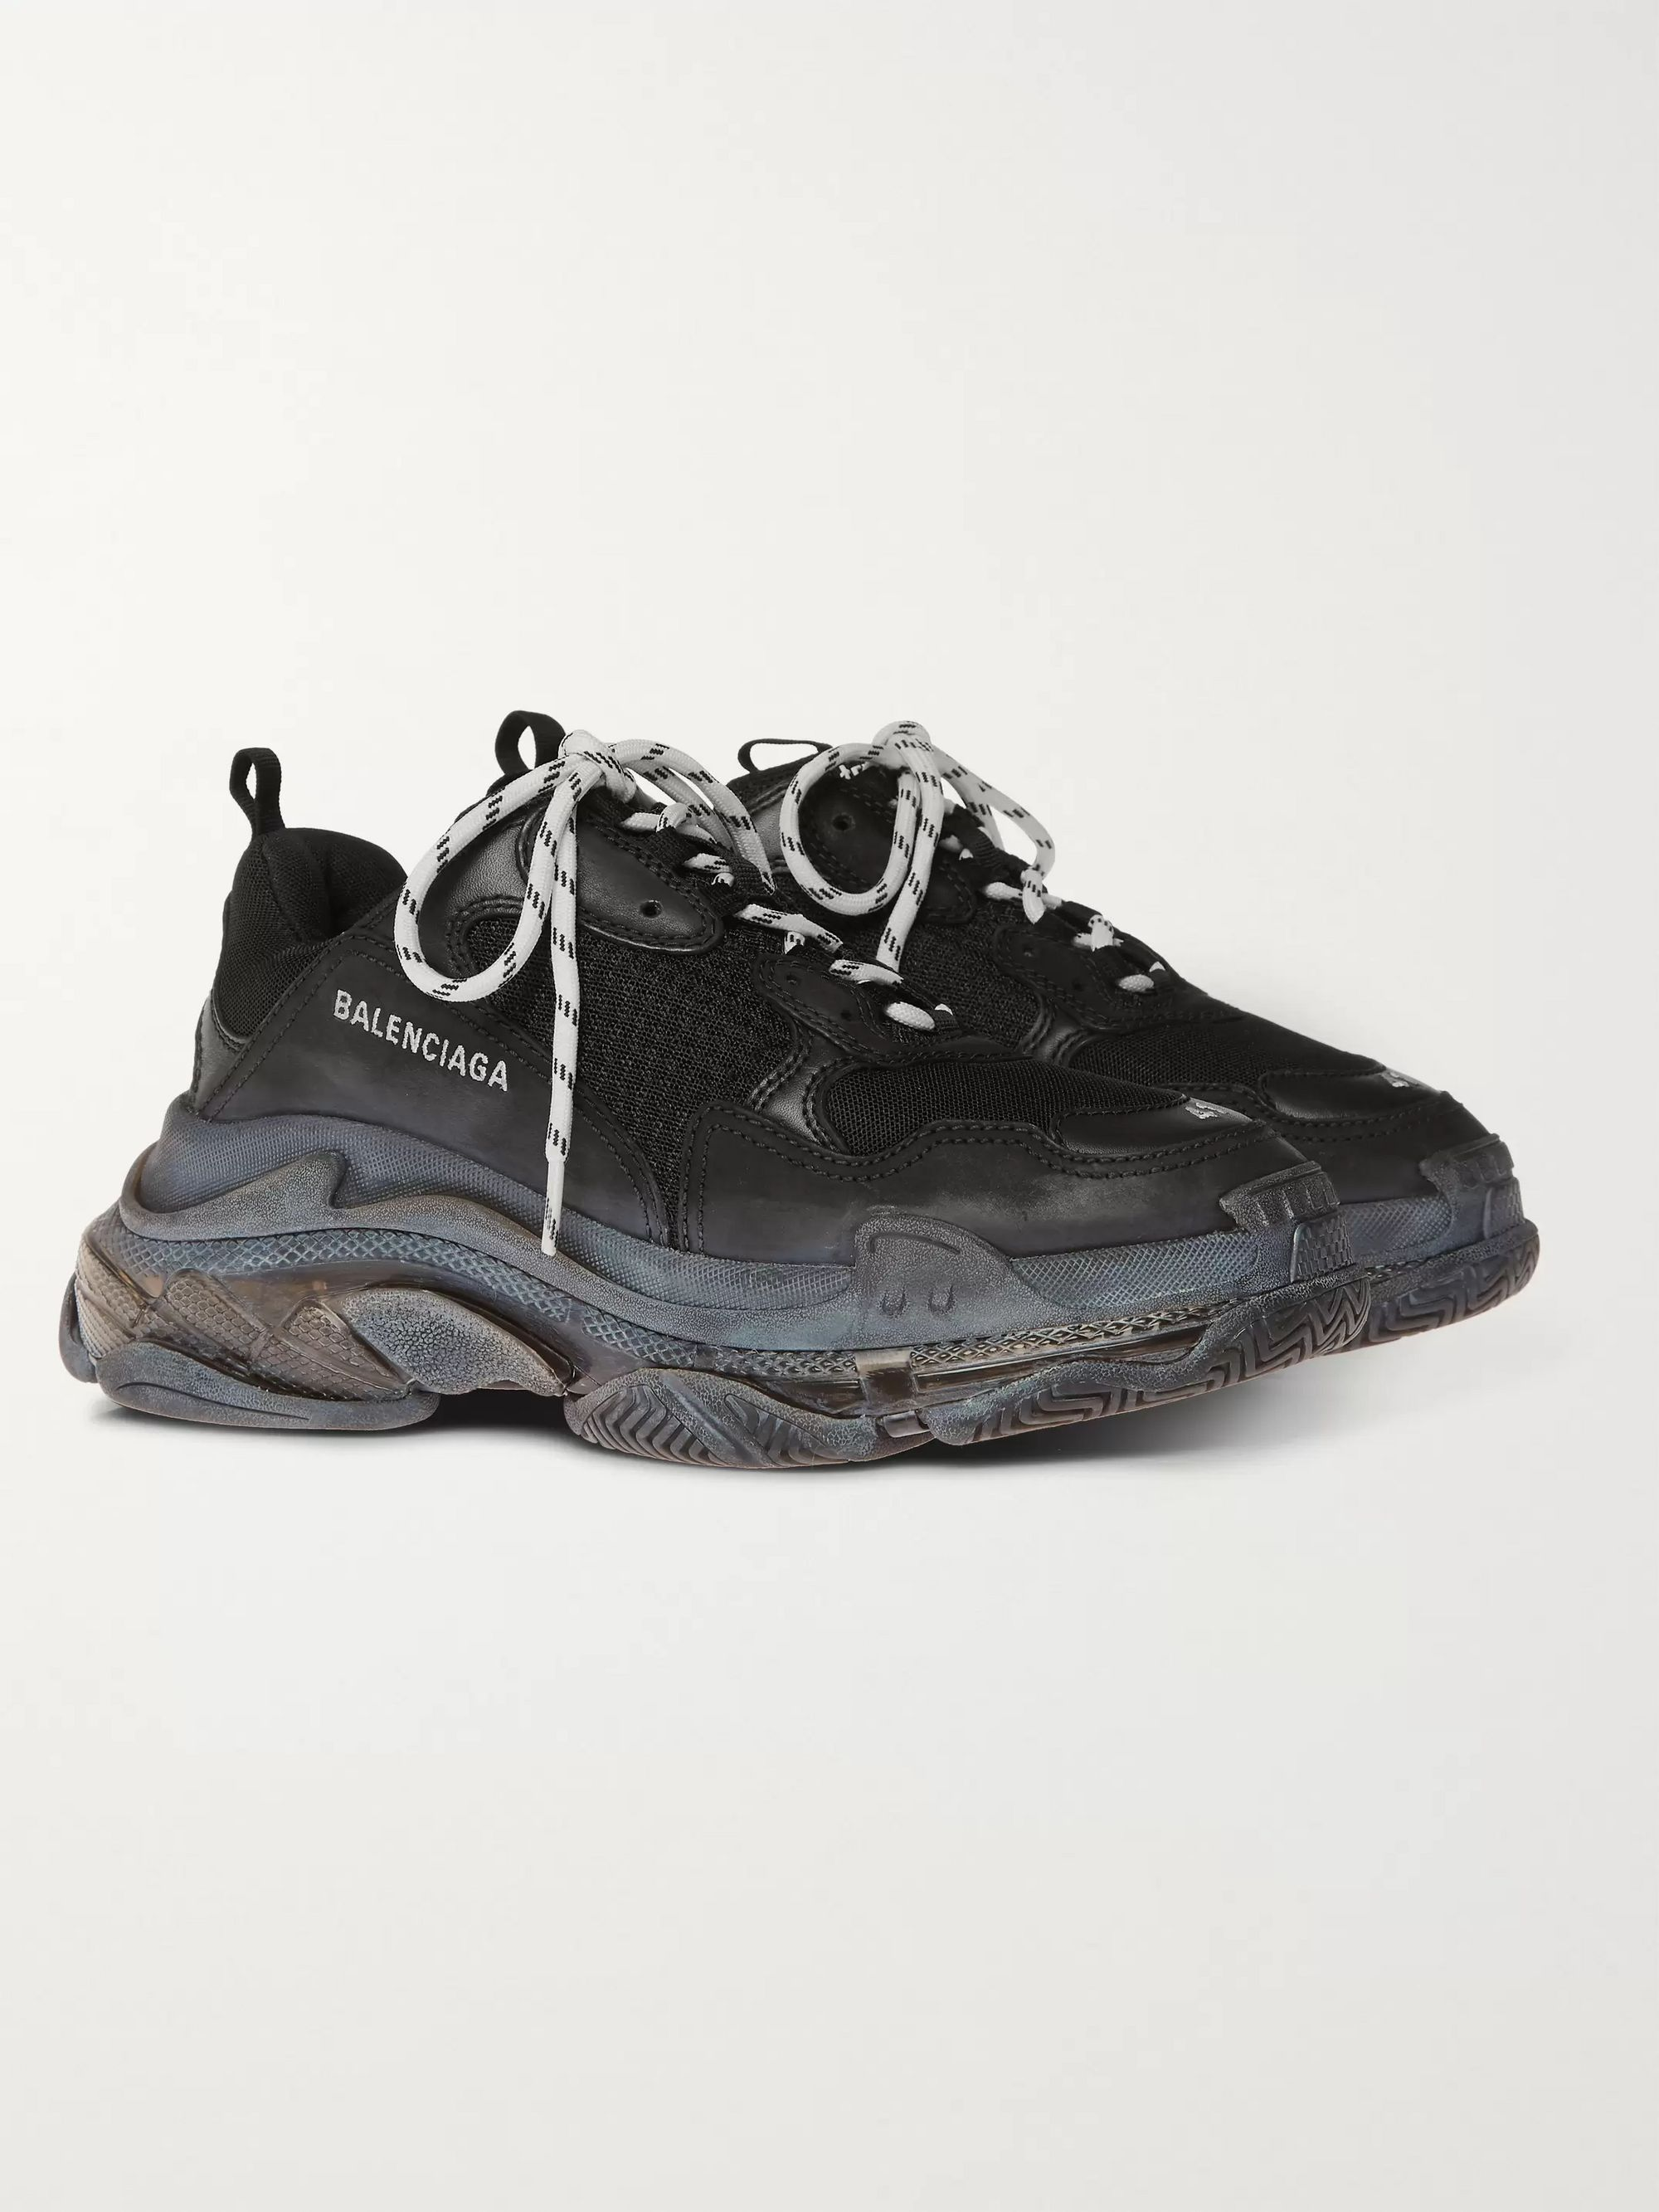 Balenciaga Triple S On Foot Sinema videoları